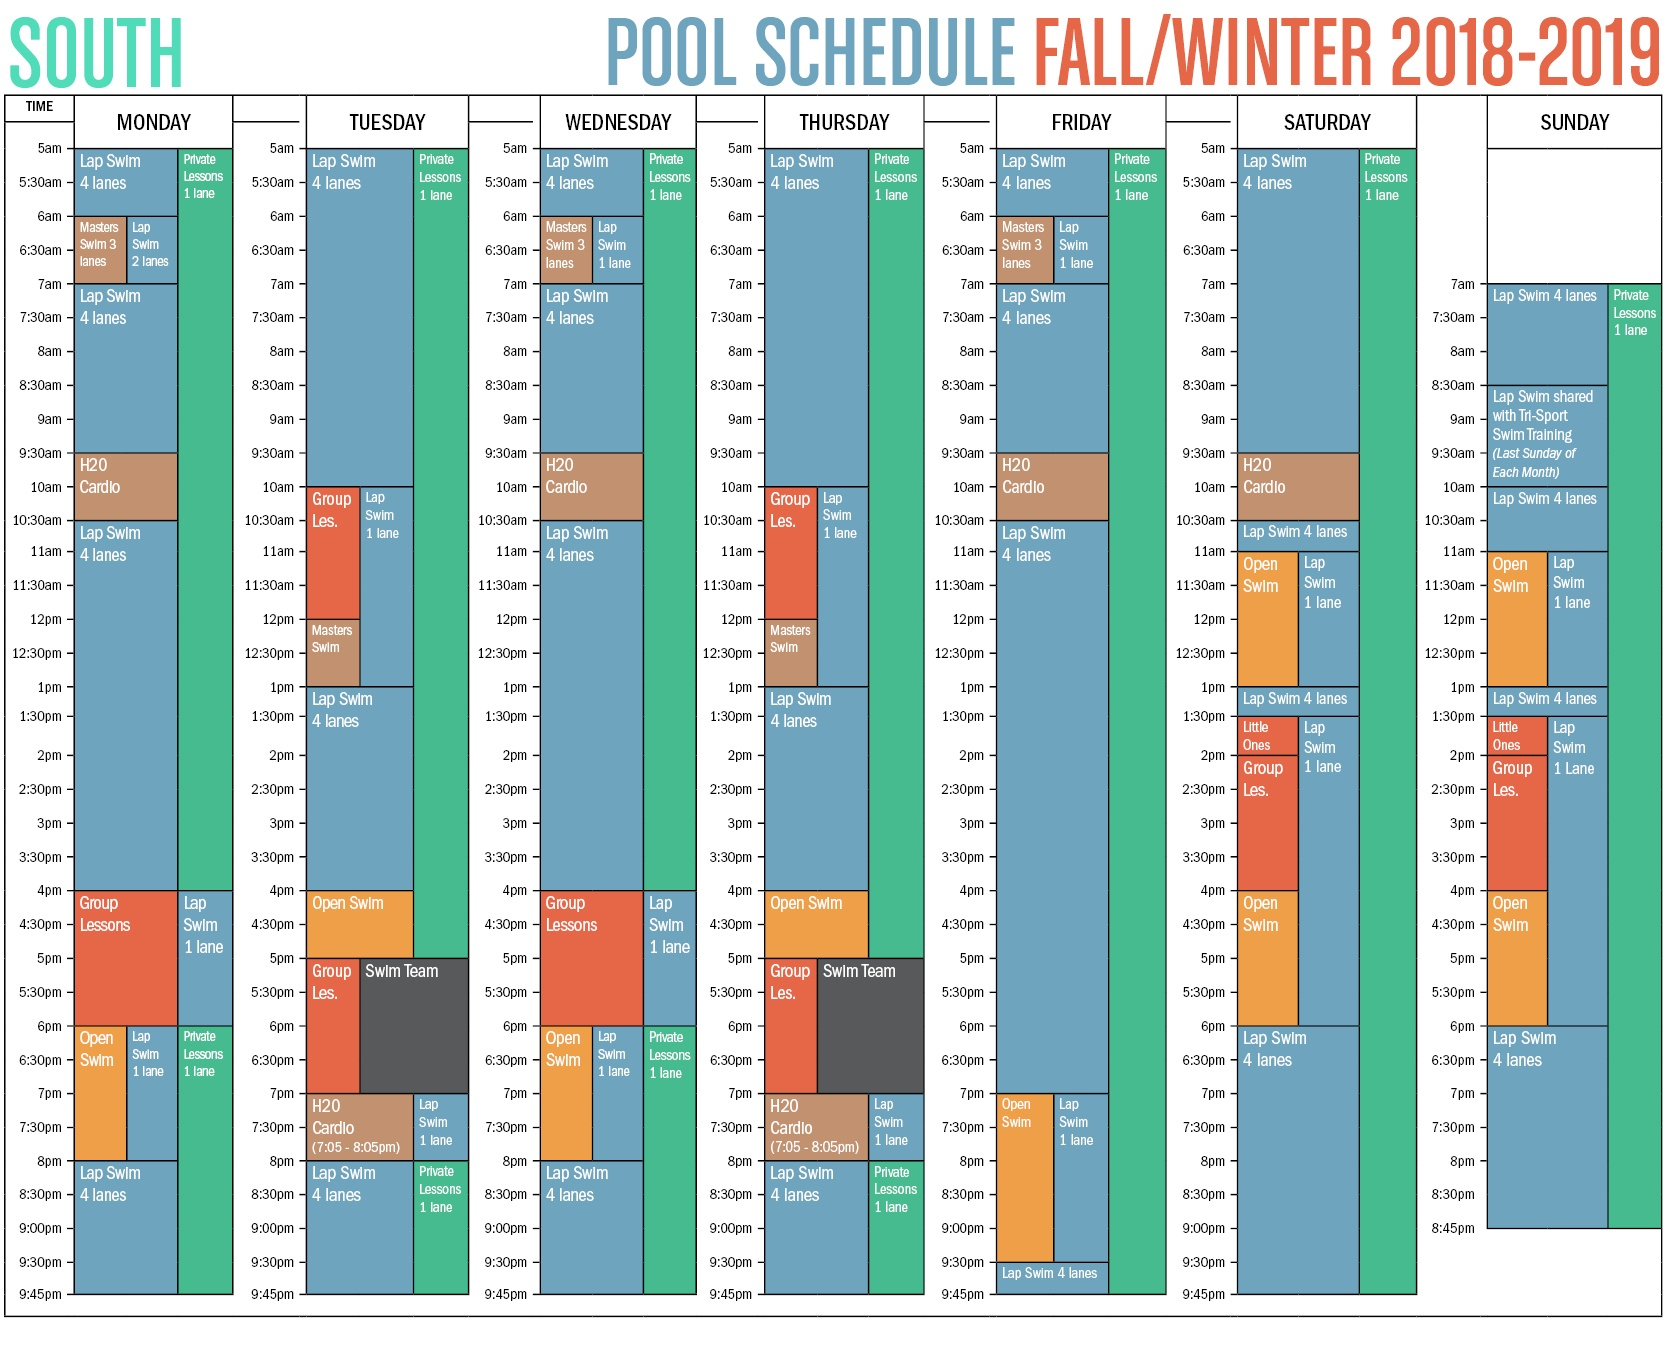 Q3-4-FallWinter-PoolSchedule-South